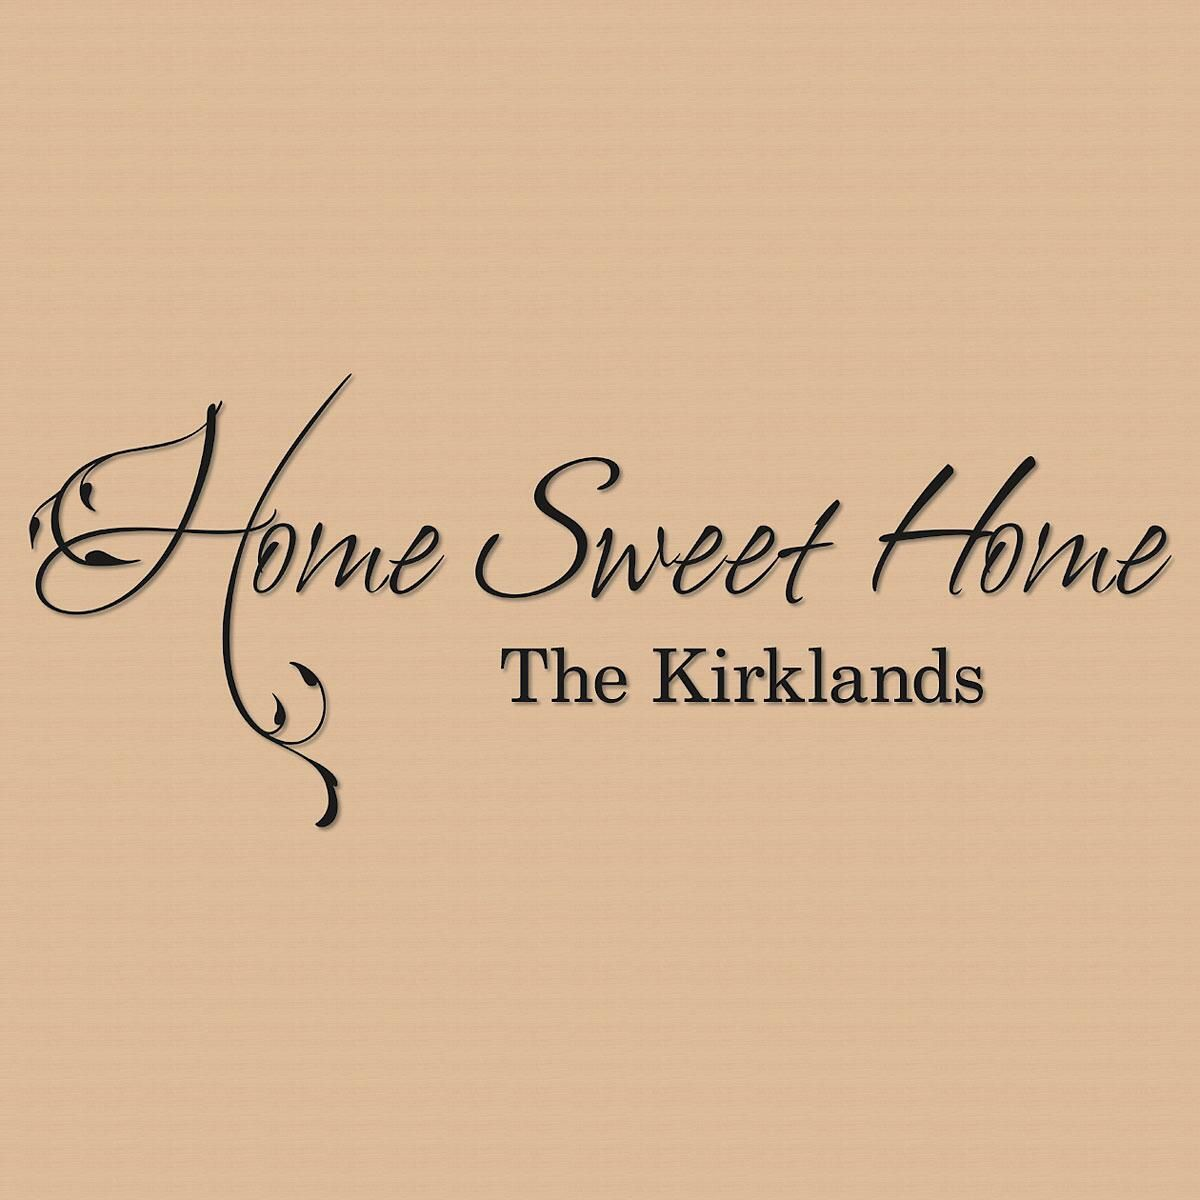 Home Sweet Home Personalized Vinyl Wall Art